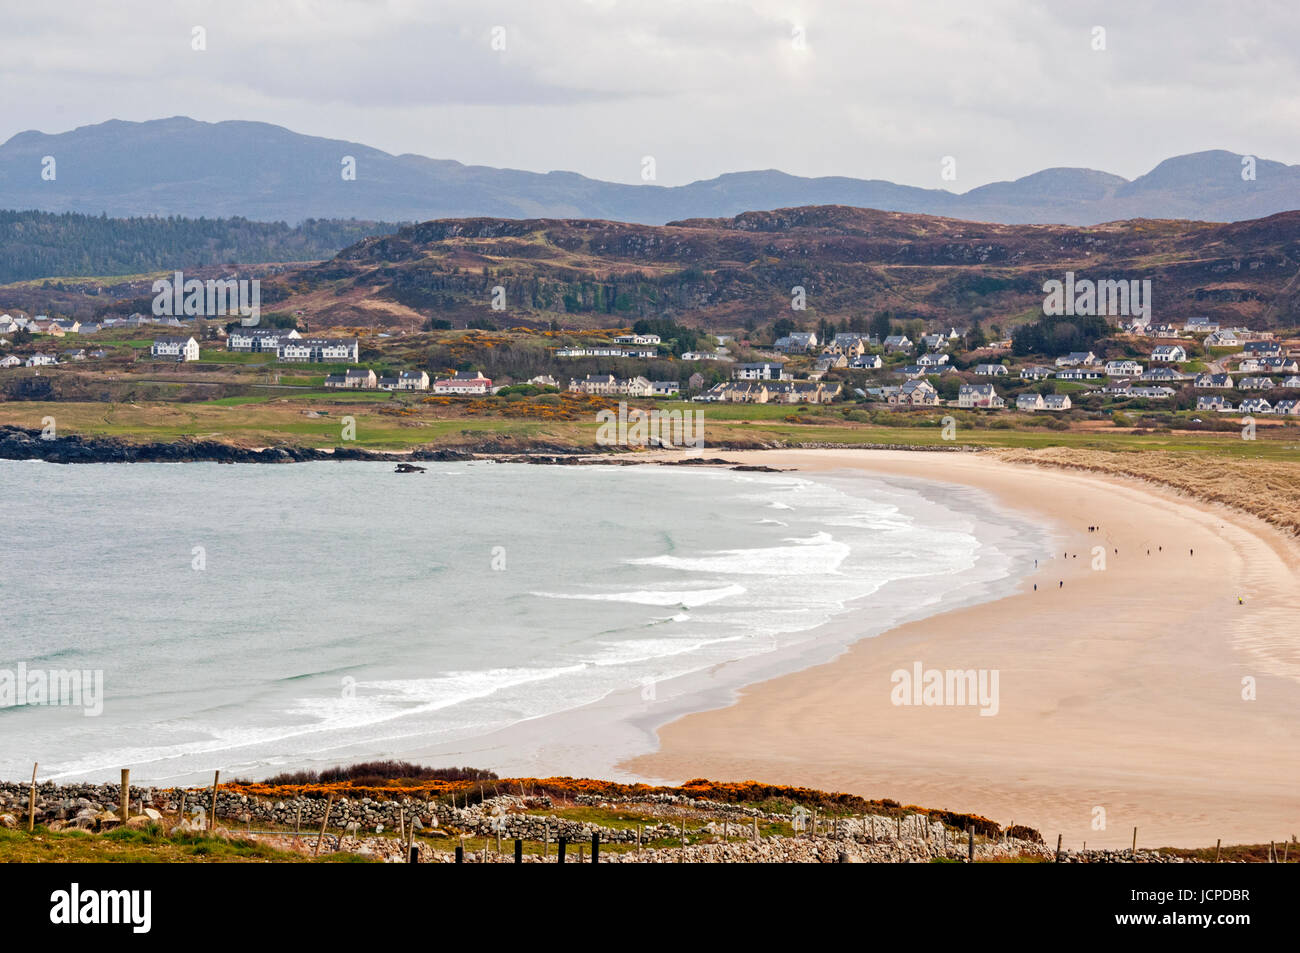 Killahoey Beach from Horn Head loop road, Dunfanaghy, County Donegal, Ireland - Stock Image